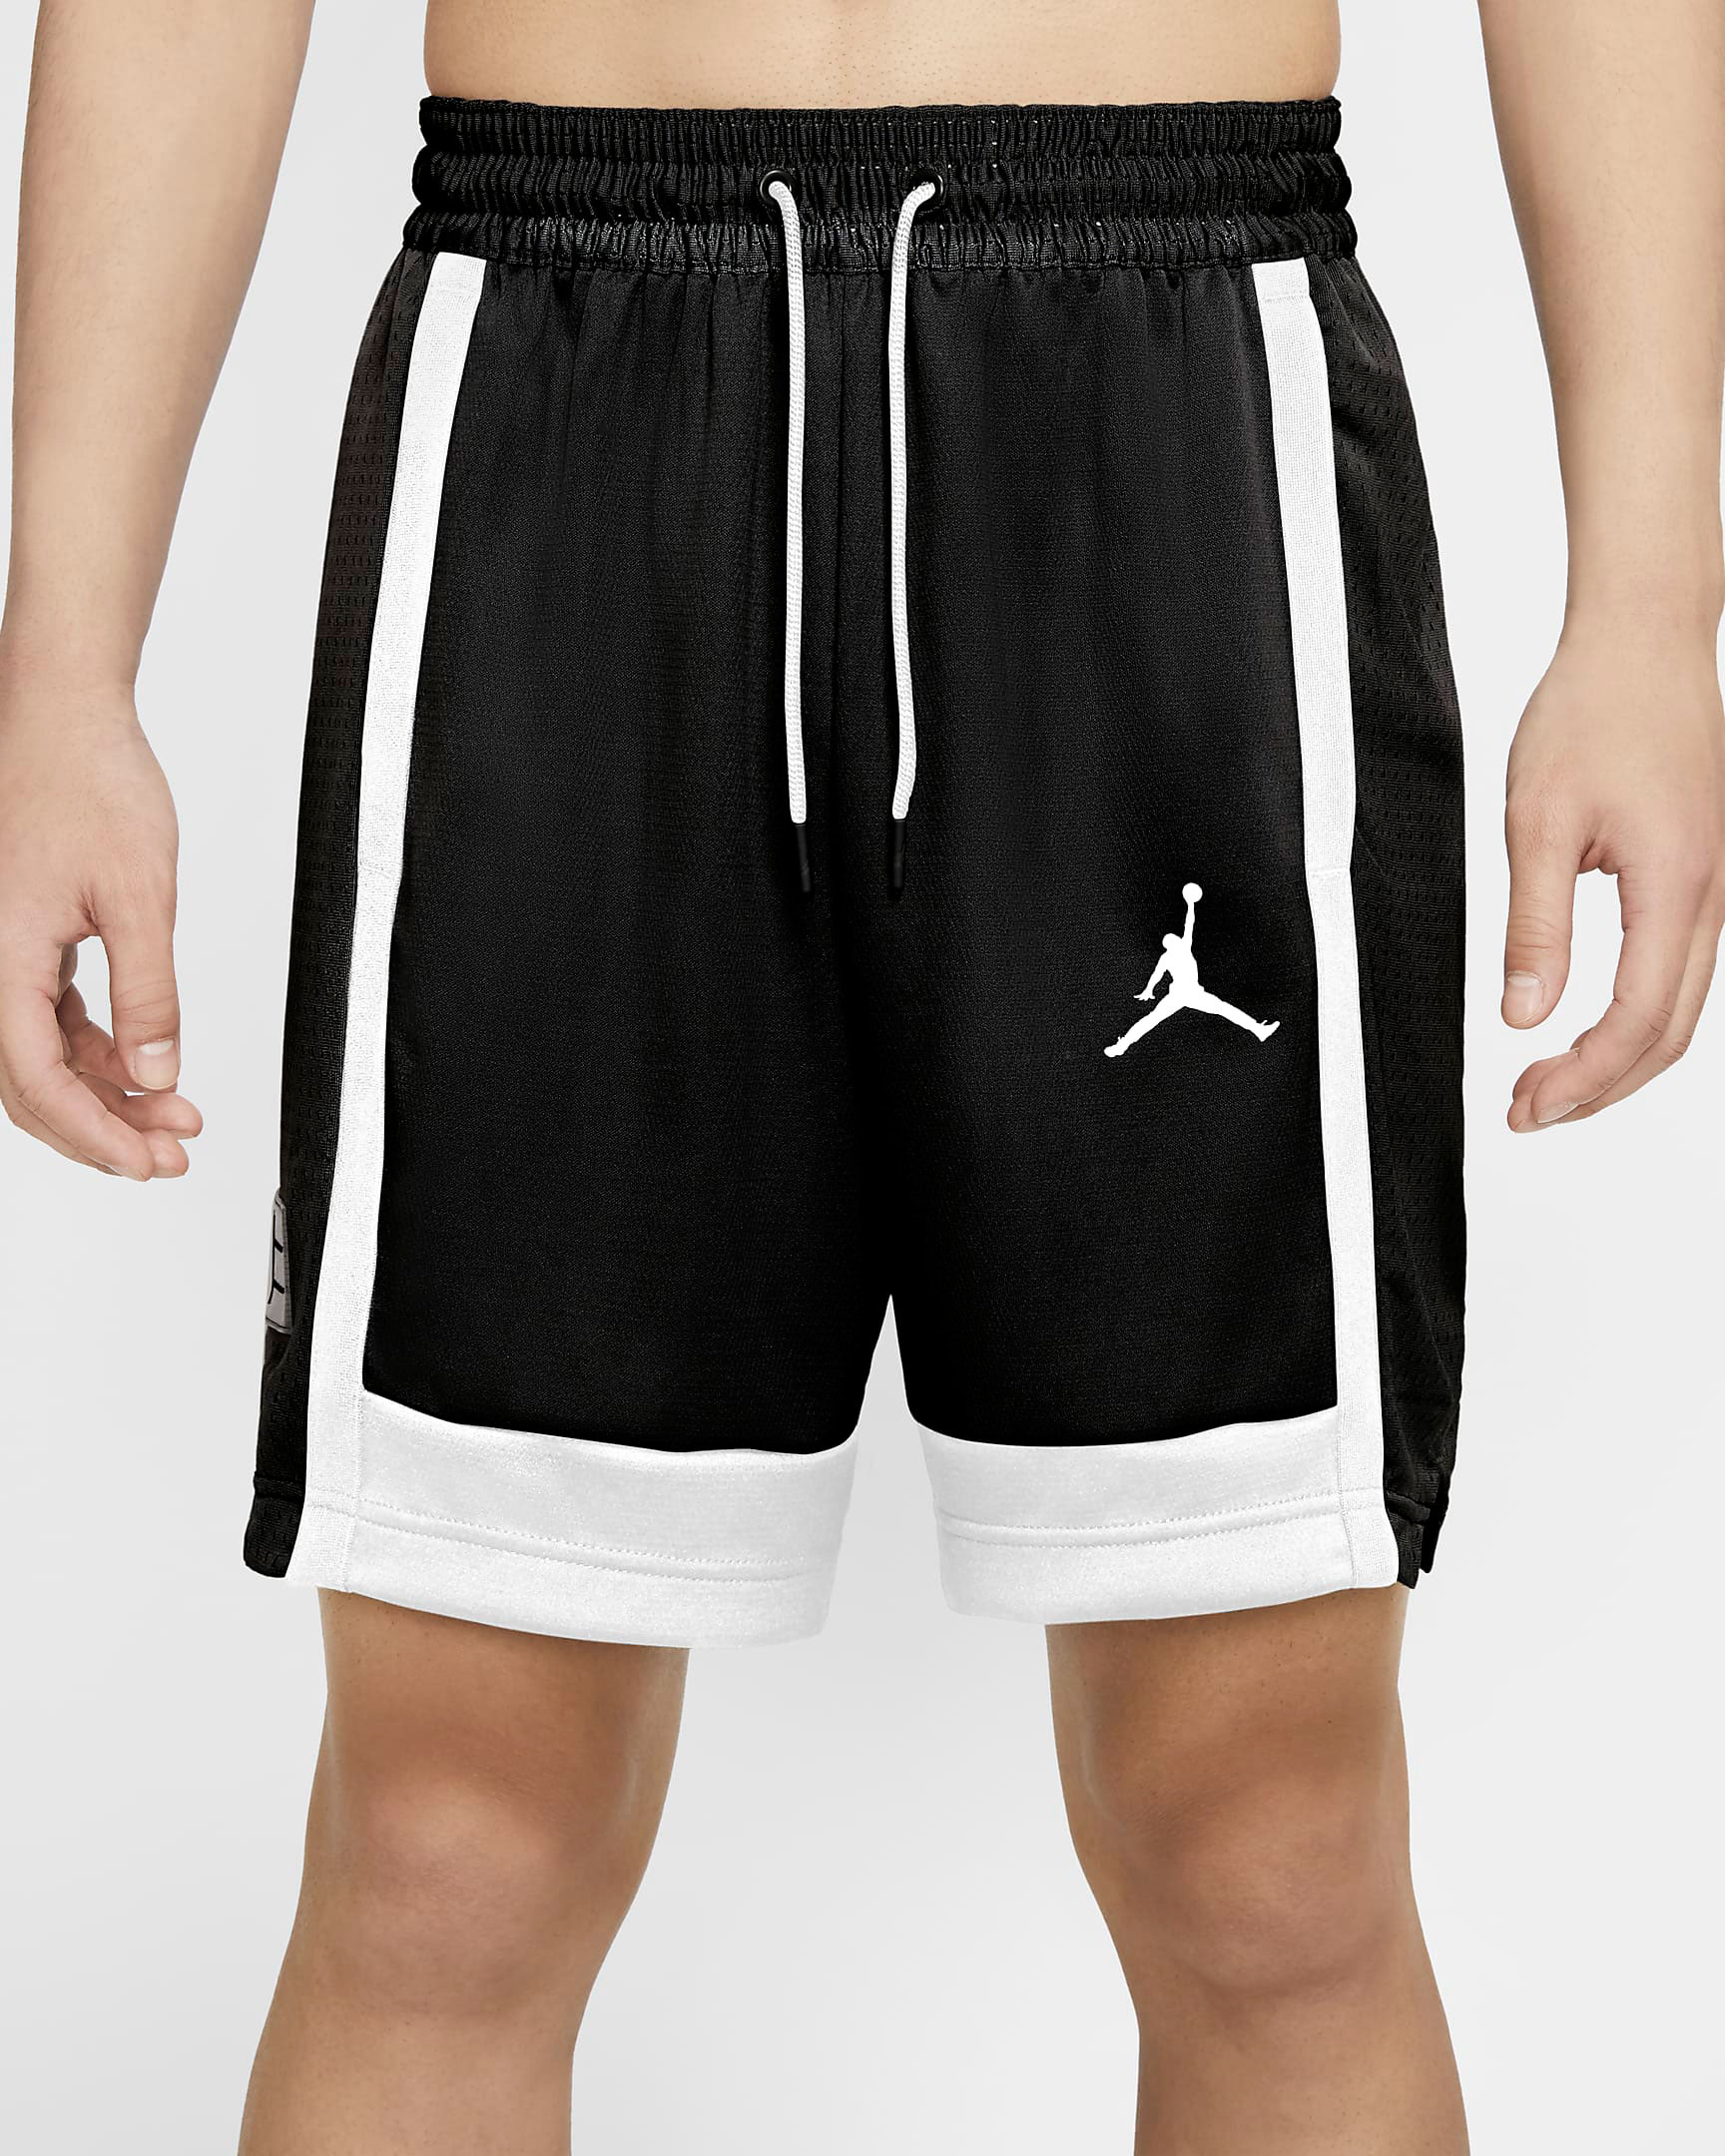 air-jordan-11-jubilee-black-white-jordan-shorts-1